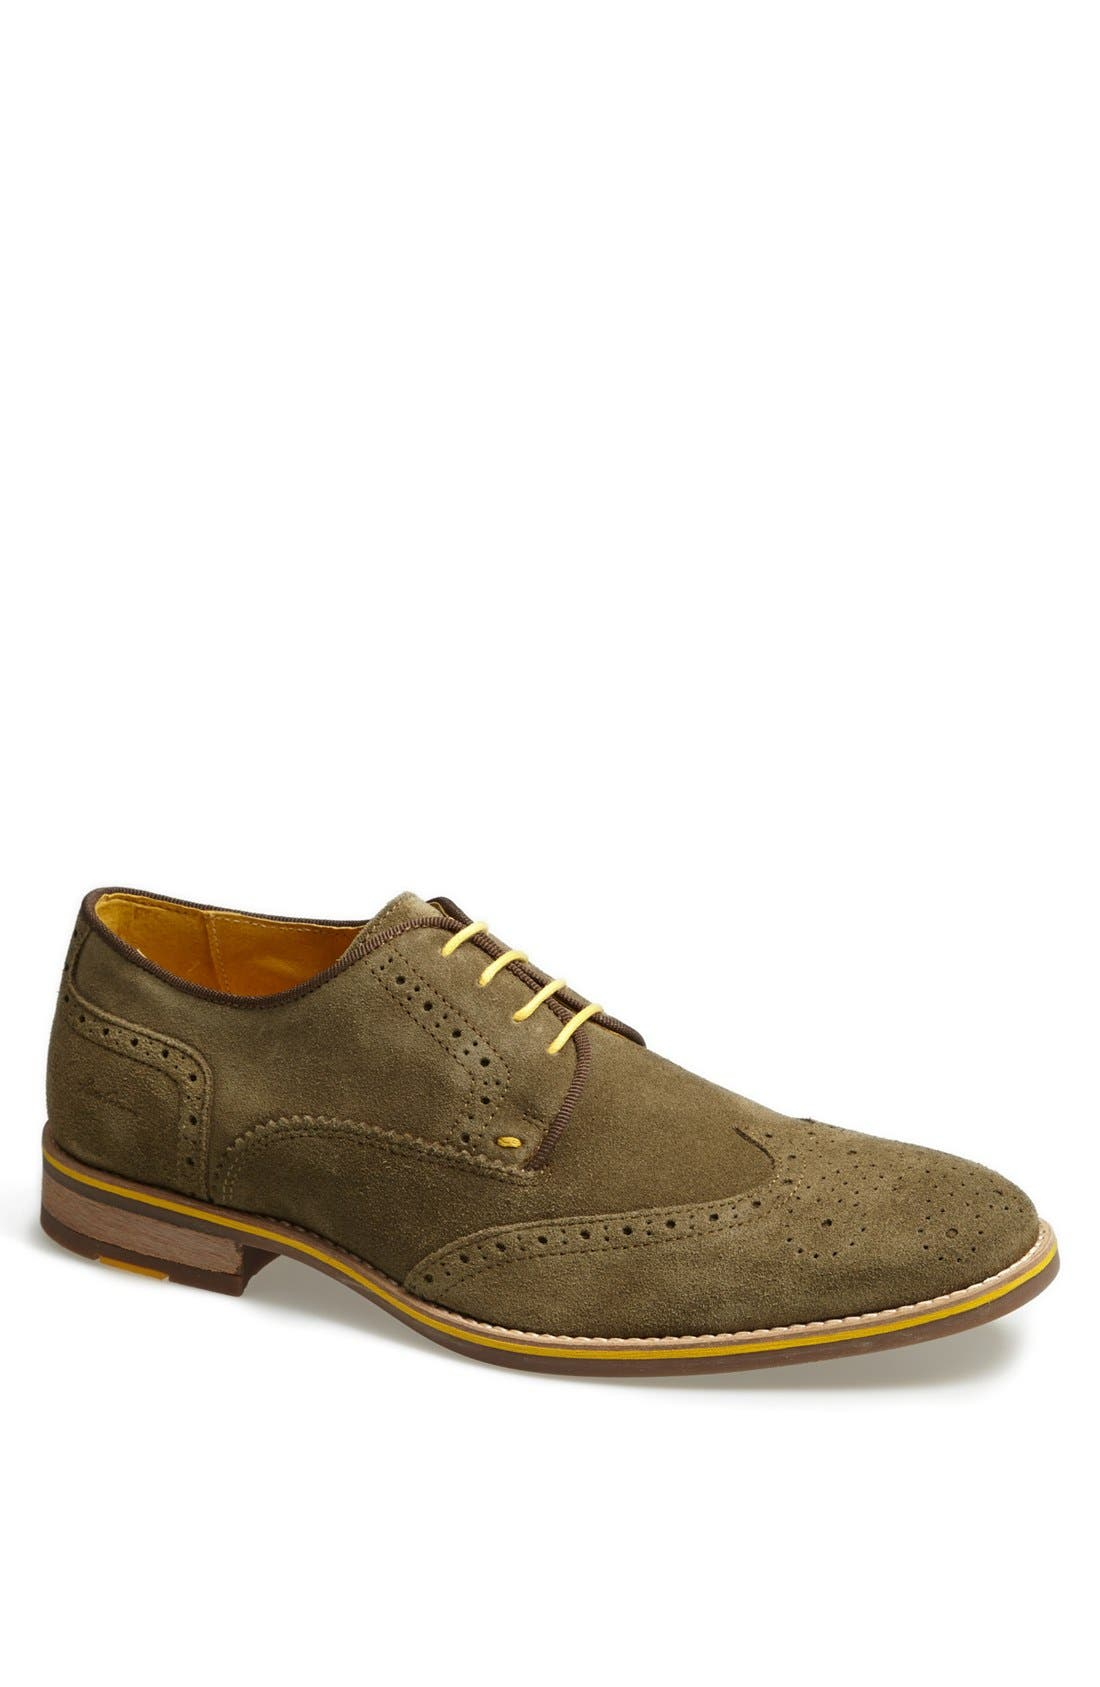 Alternate Image 1 Selected - Kenneth Cole New York 'Social Ladder' Suede Wingtip